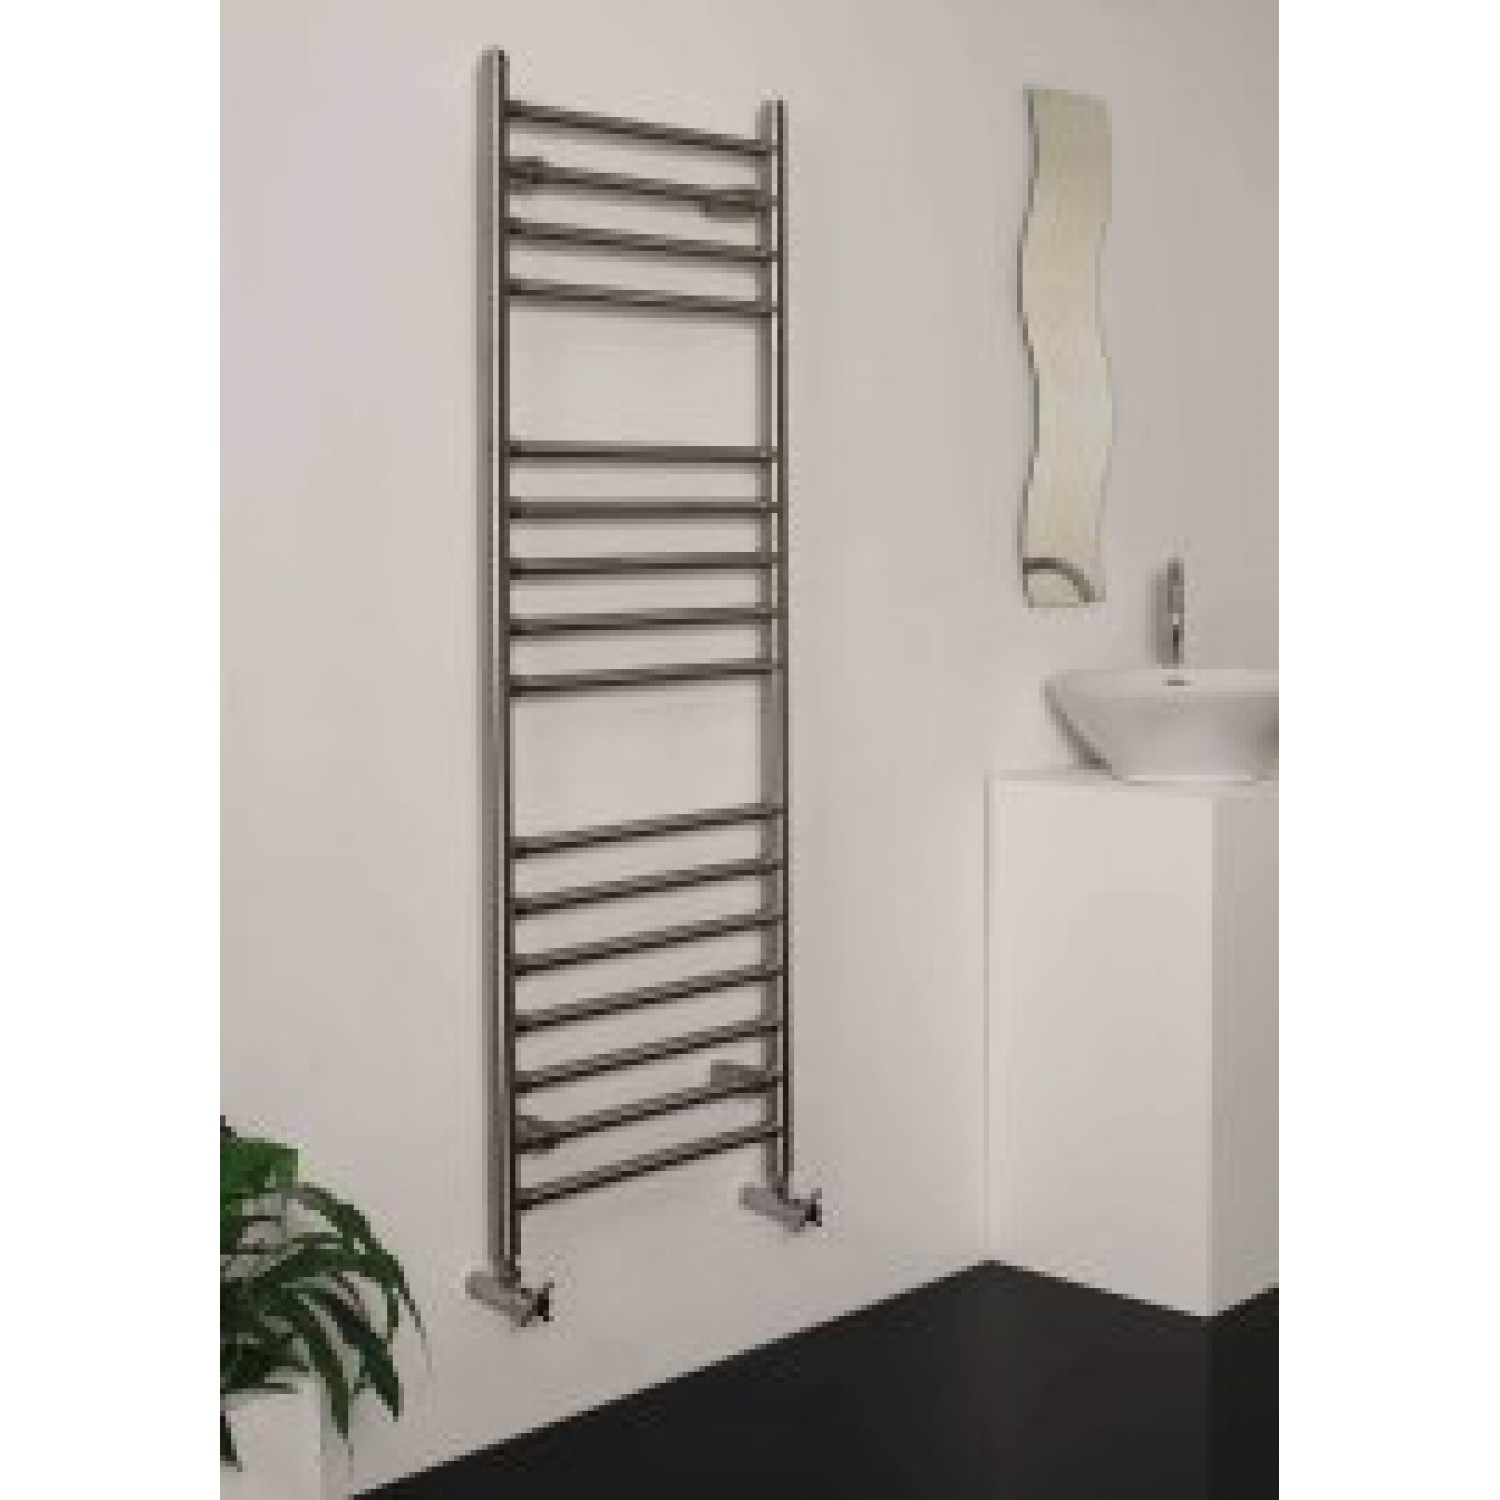 radiateur s che serviette d coratif inox. Black Bedroom Furniture Sets. Home Design Ideas